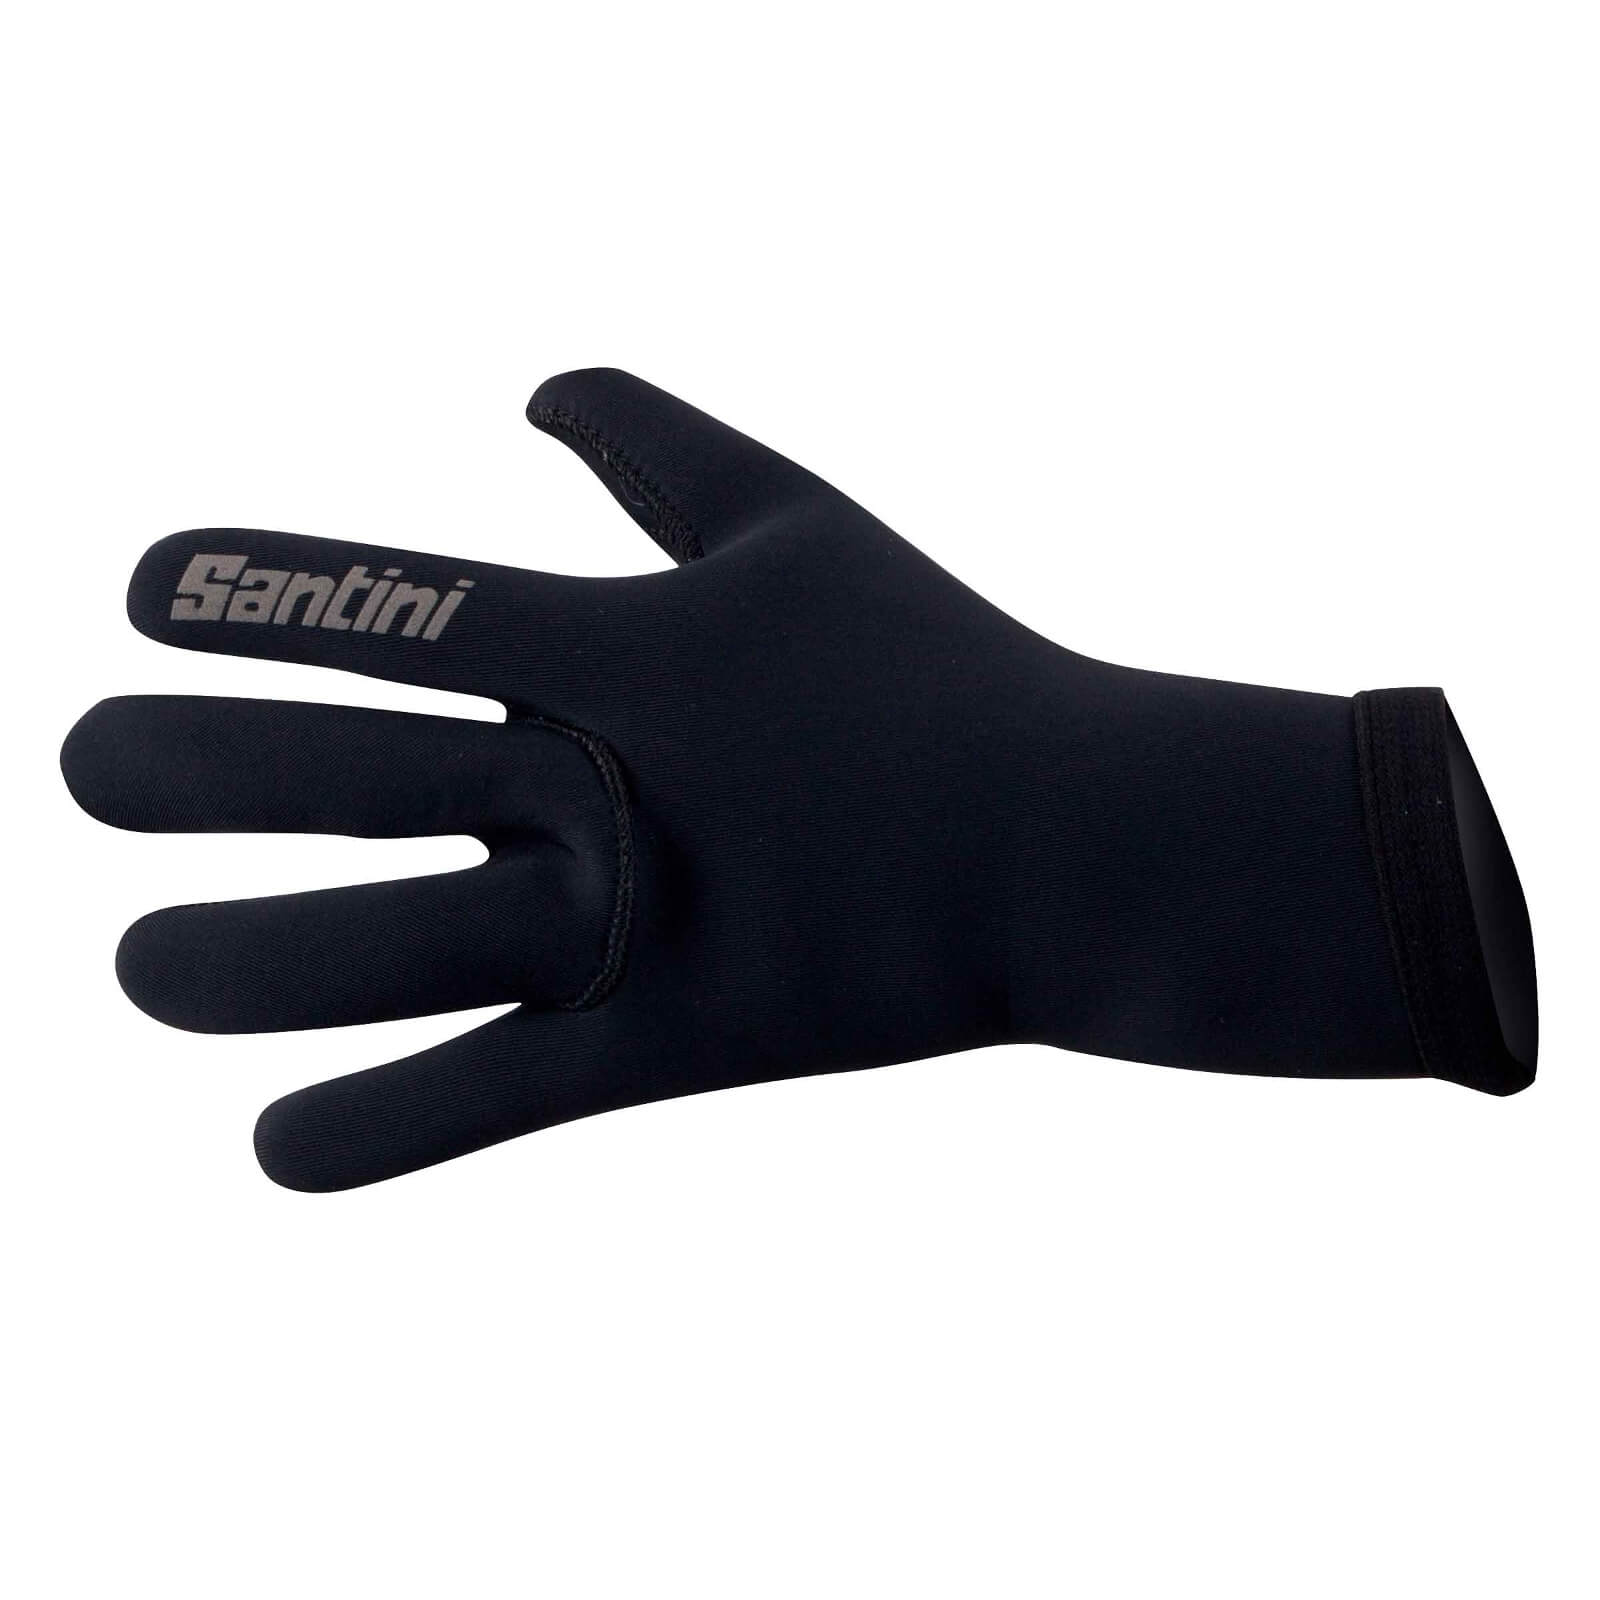 Santini Blast Neoprene Winter Gloves - Black